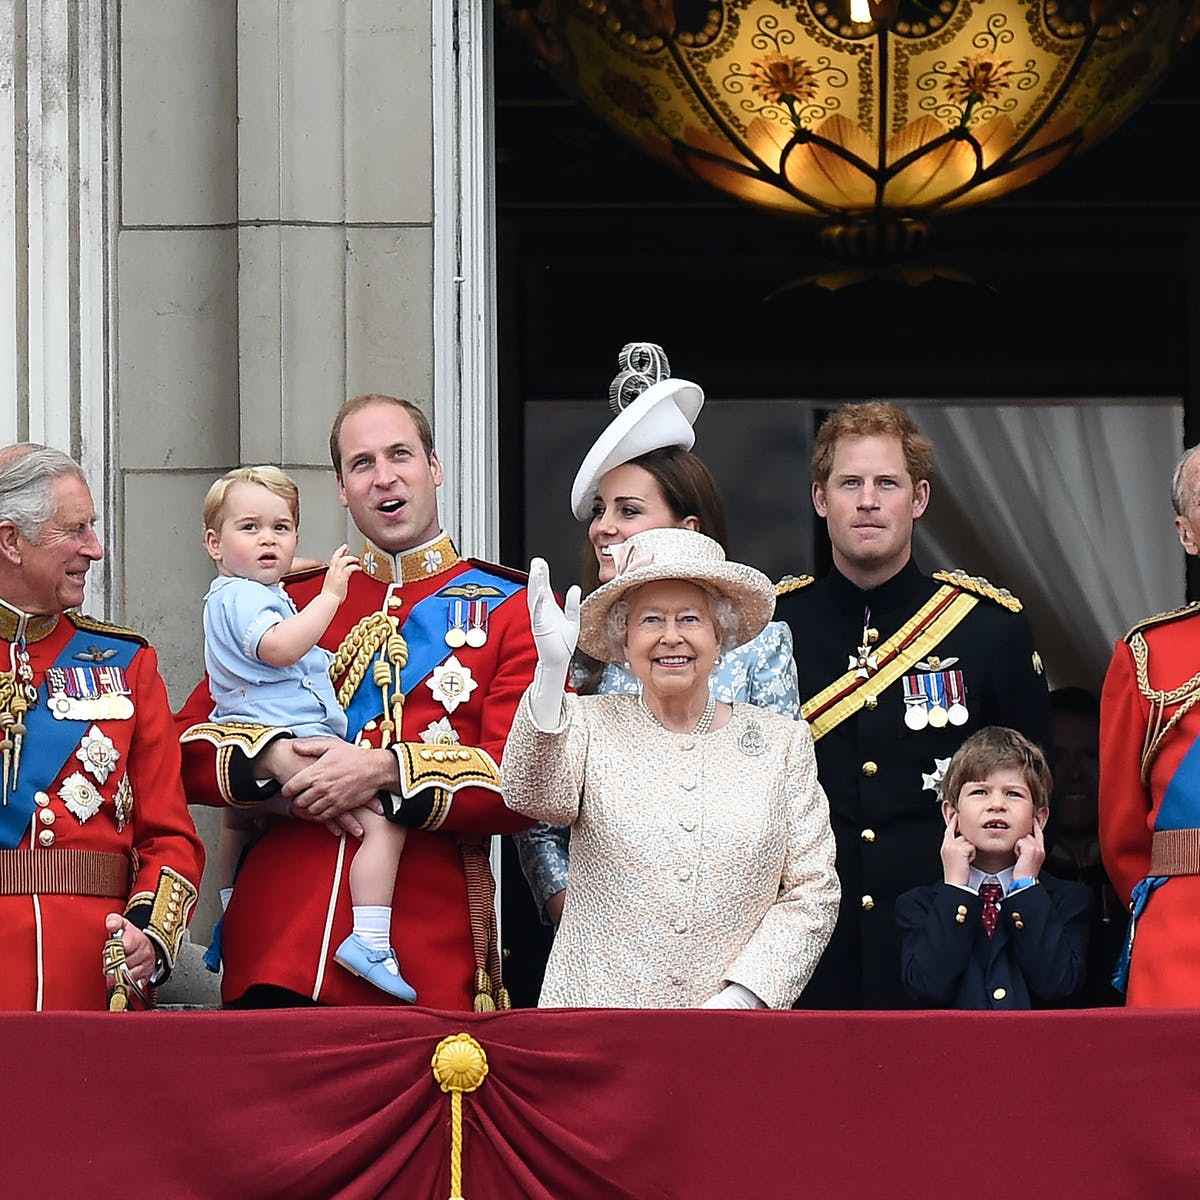 Queen Elizabeth II at 90: five ways to keep the royal family